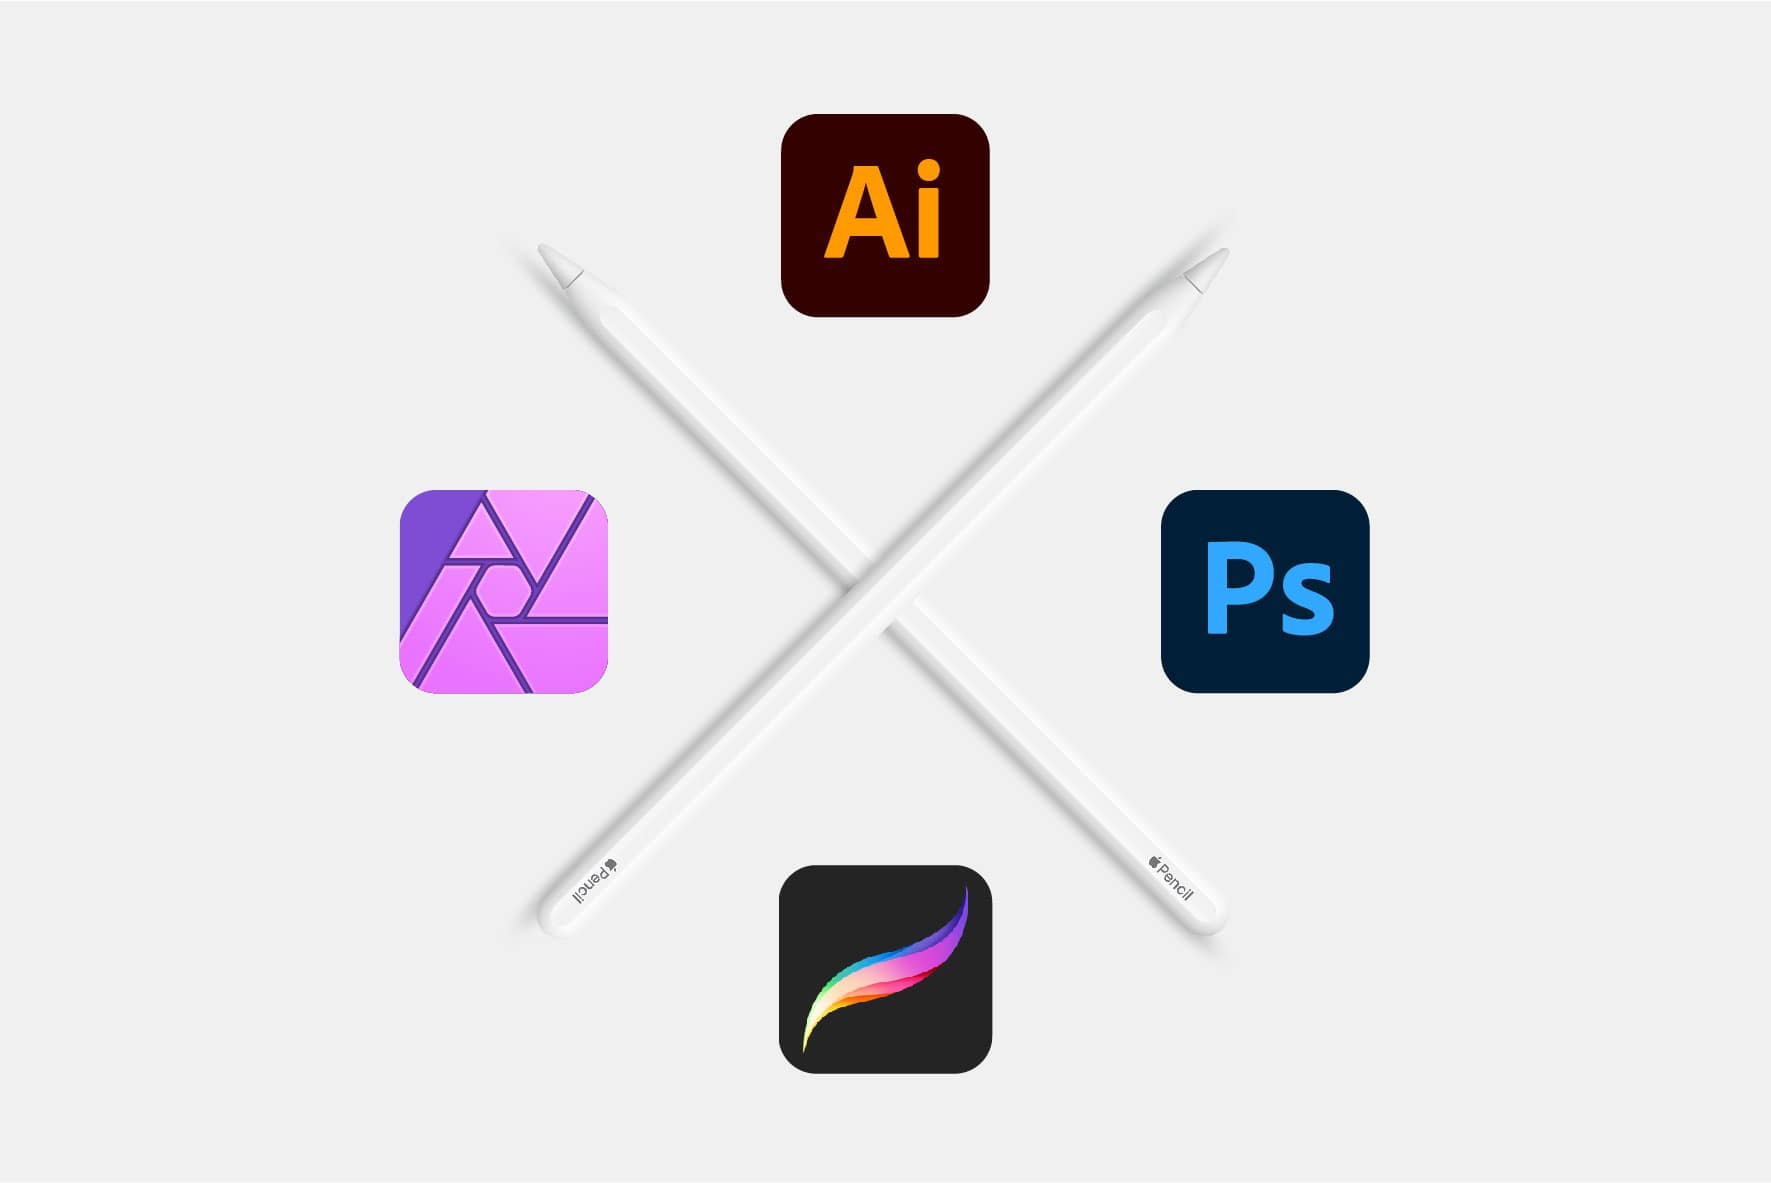 Programas de diseño gráfico Adobe Procreate Affinity Apple Pencil